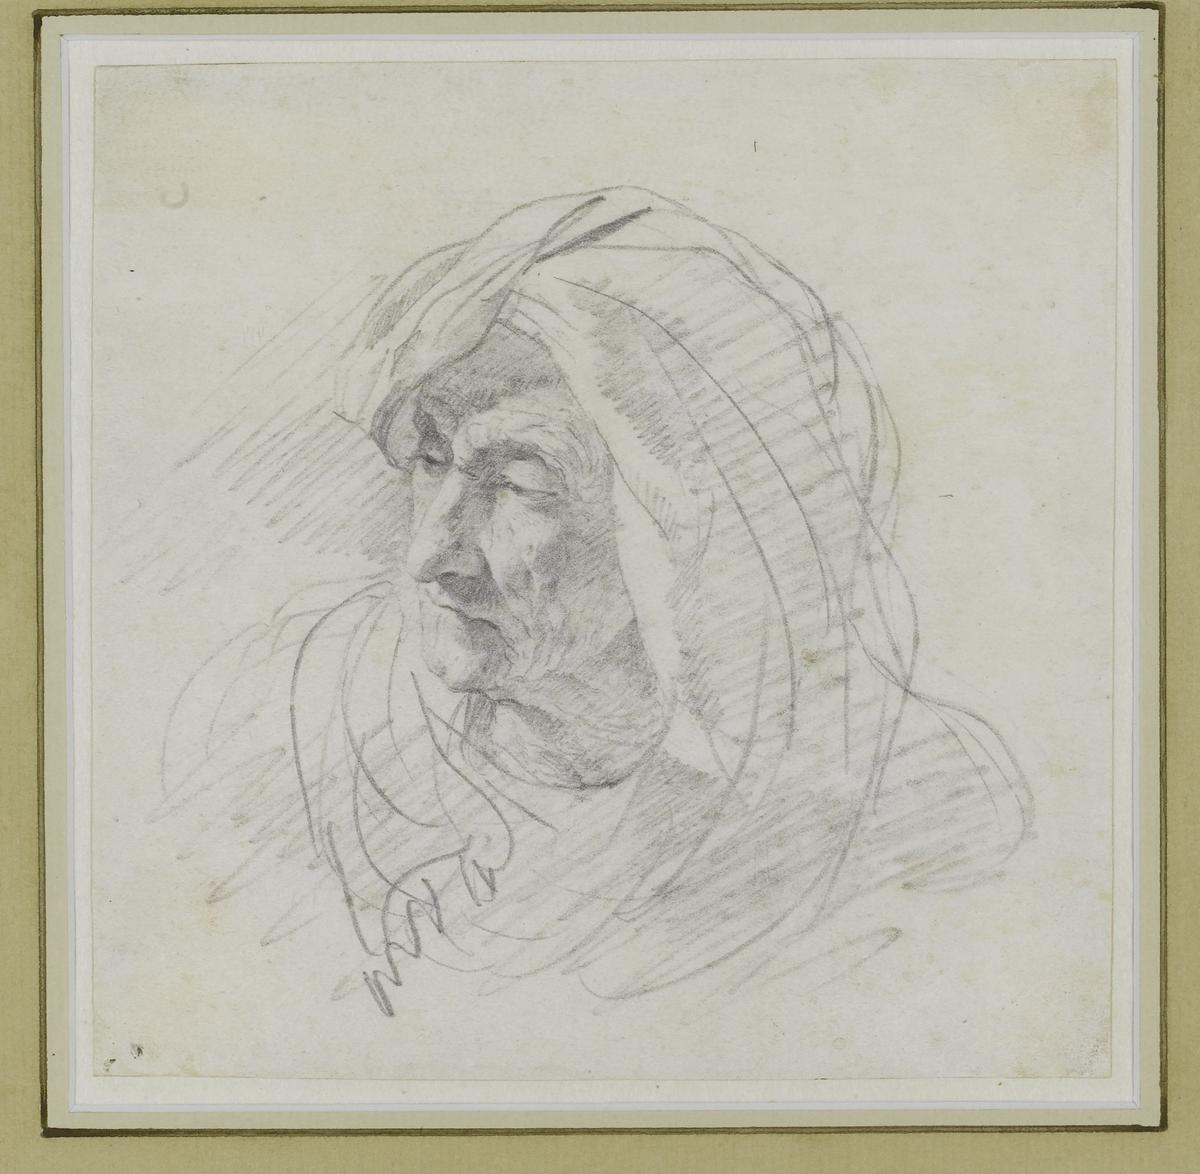 60. Head of a woman